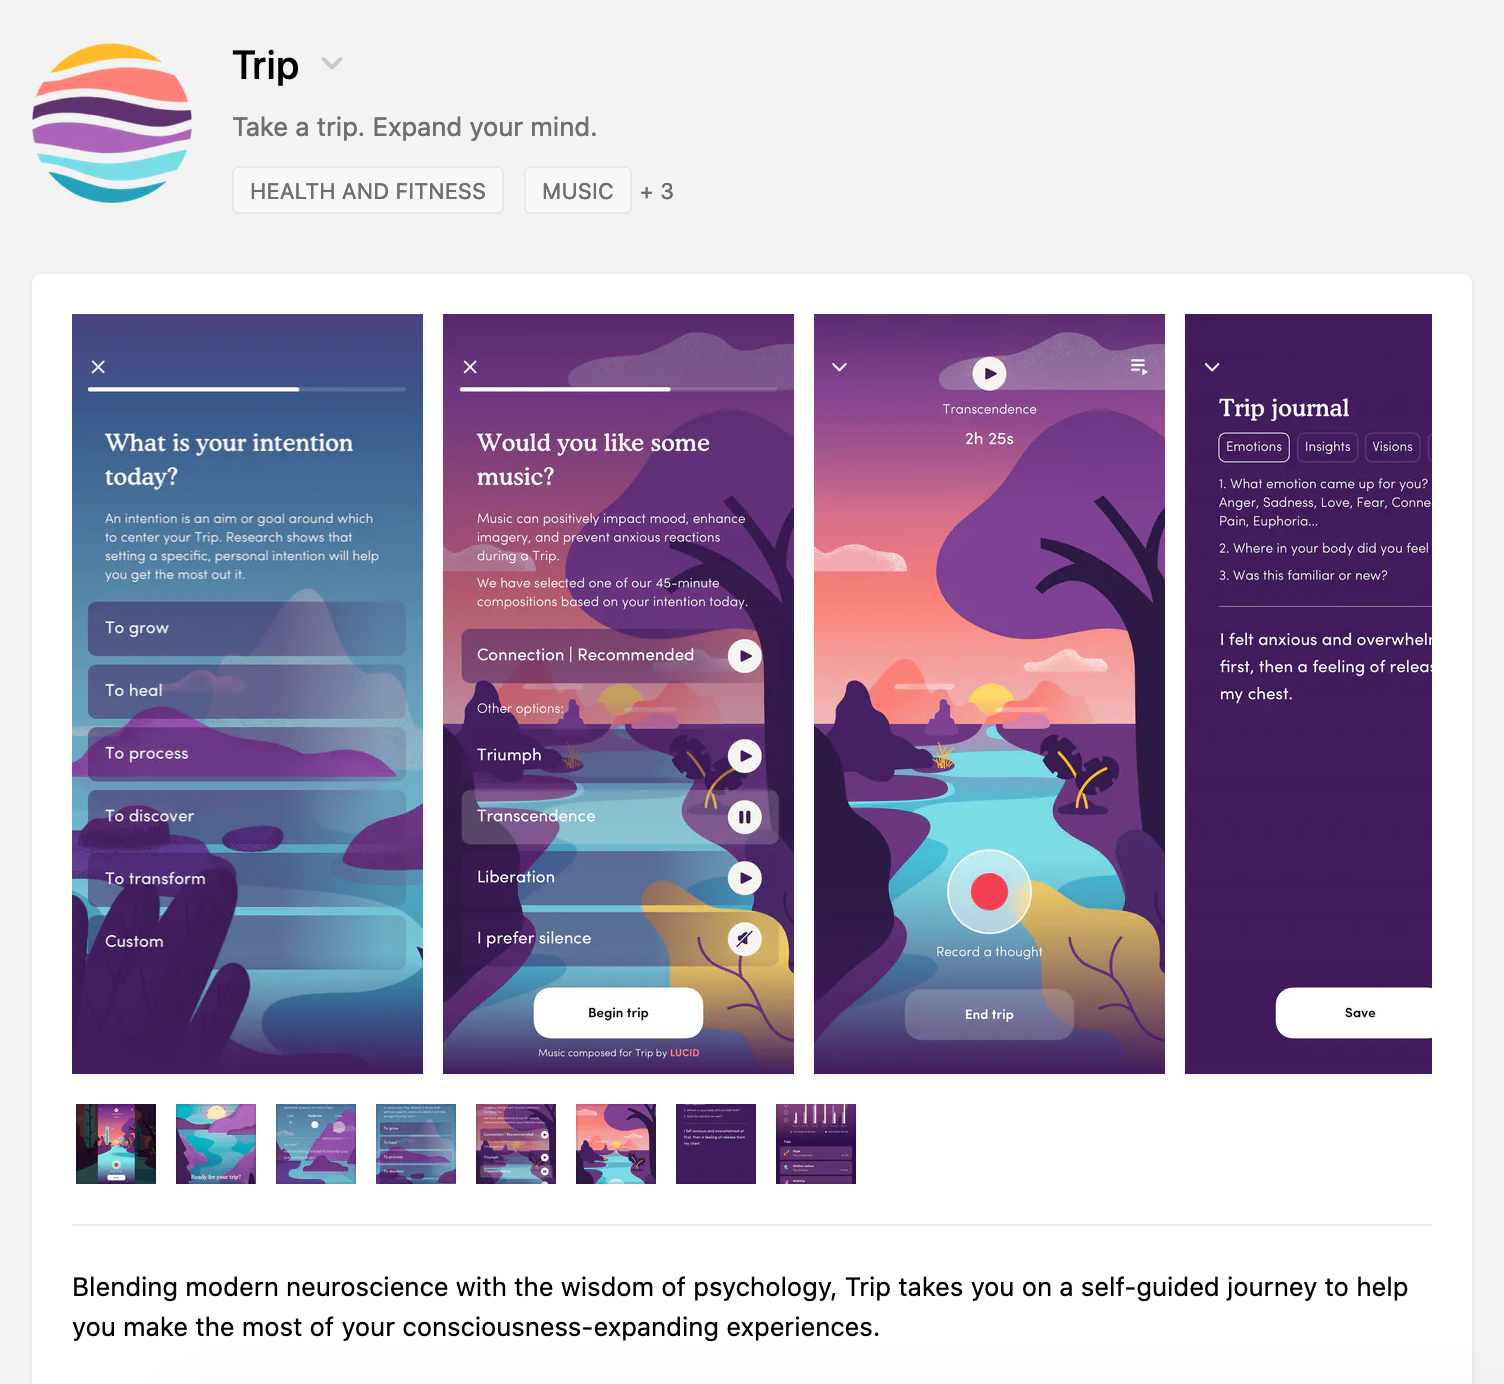 Product Hunt: Trip. Take a trip. Expand your mind